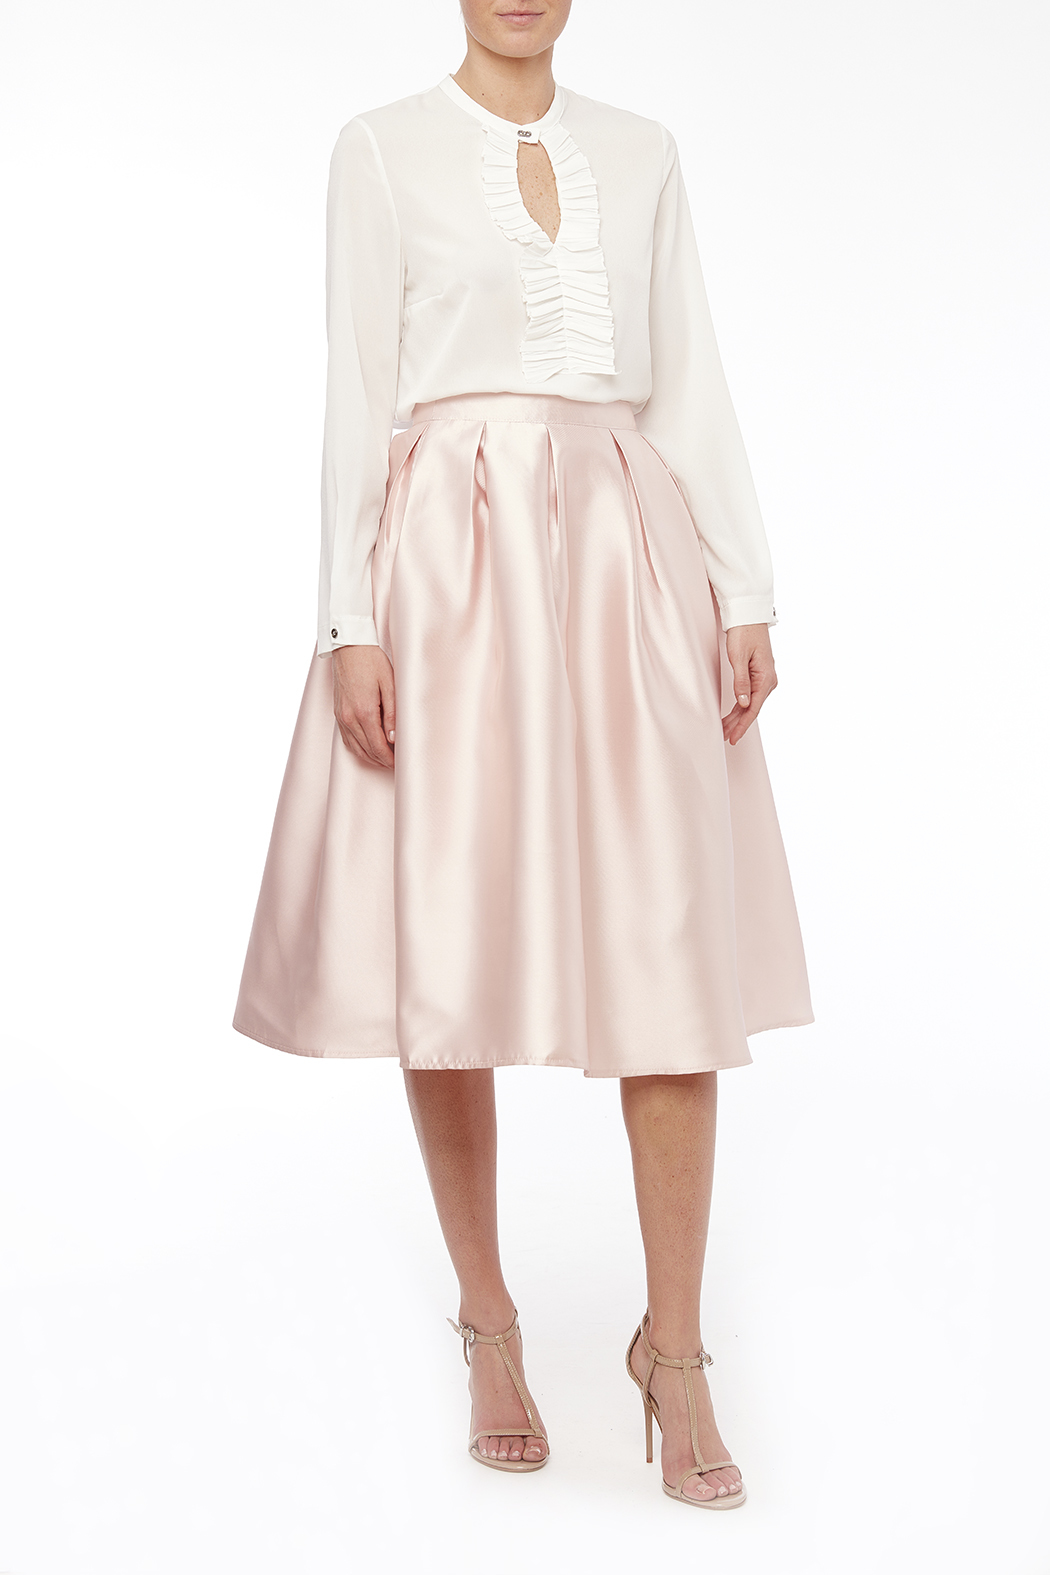 maniju Satin Midi Skirt With Pockets from Mexico by PINK SHOP ...